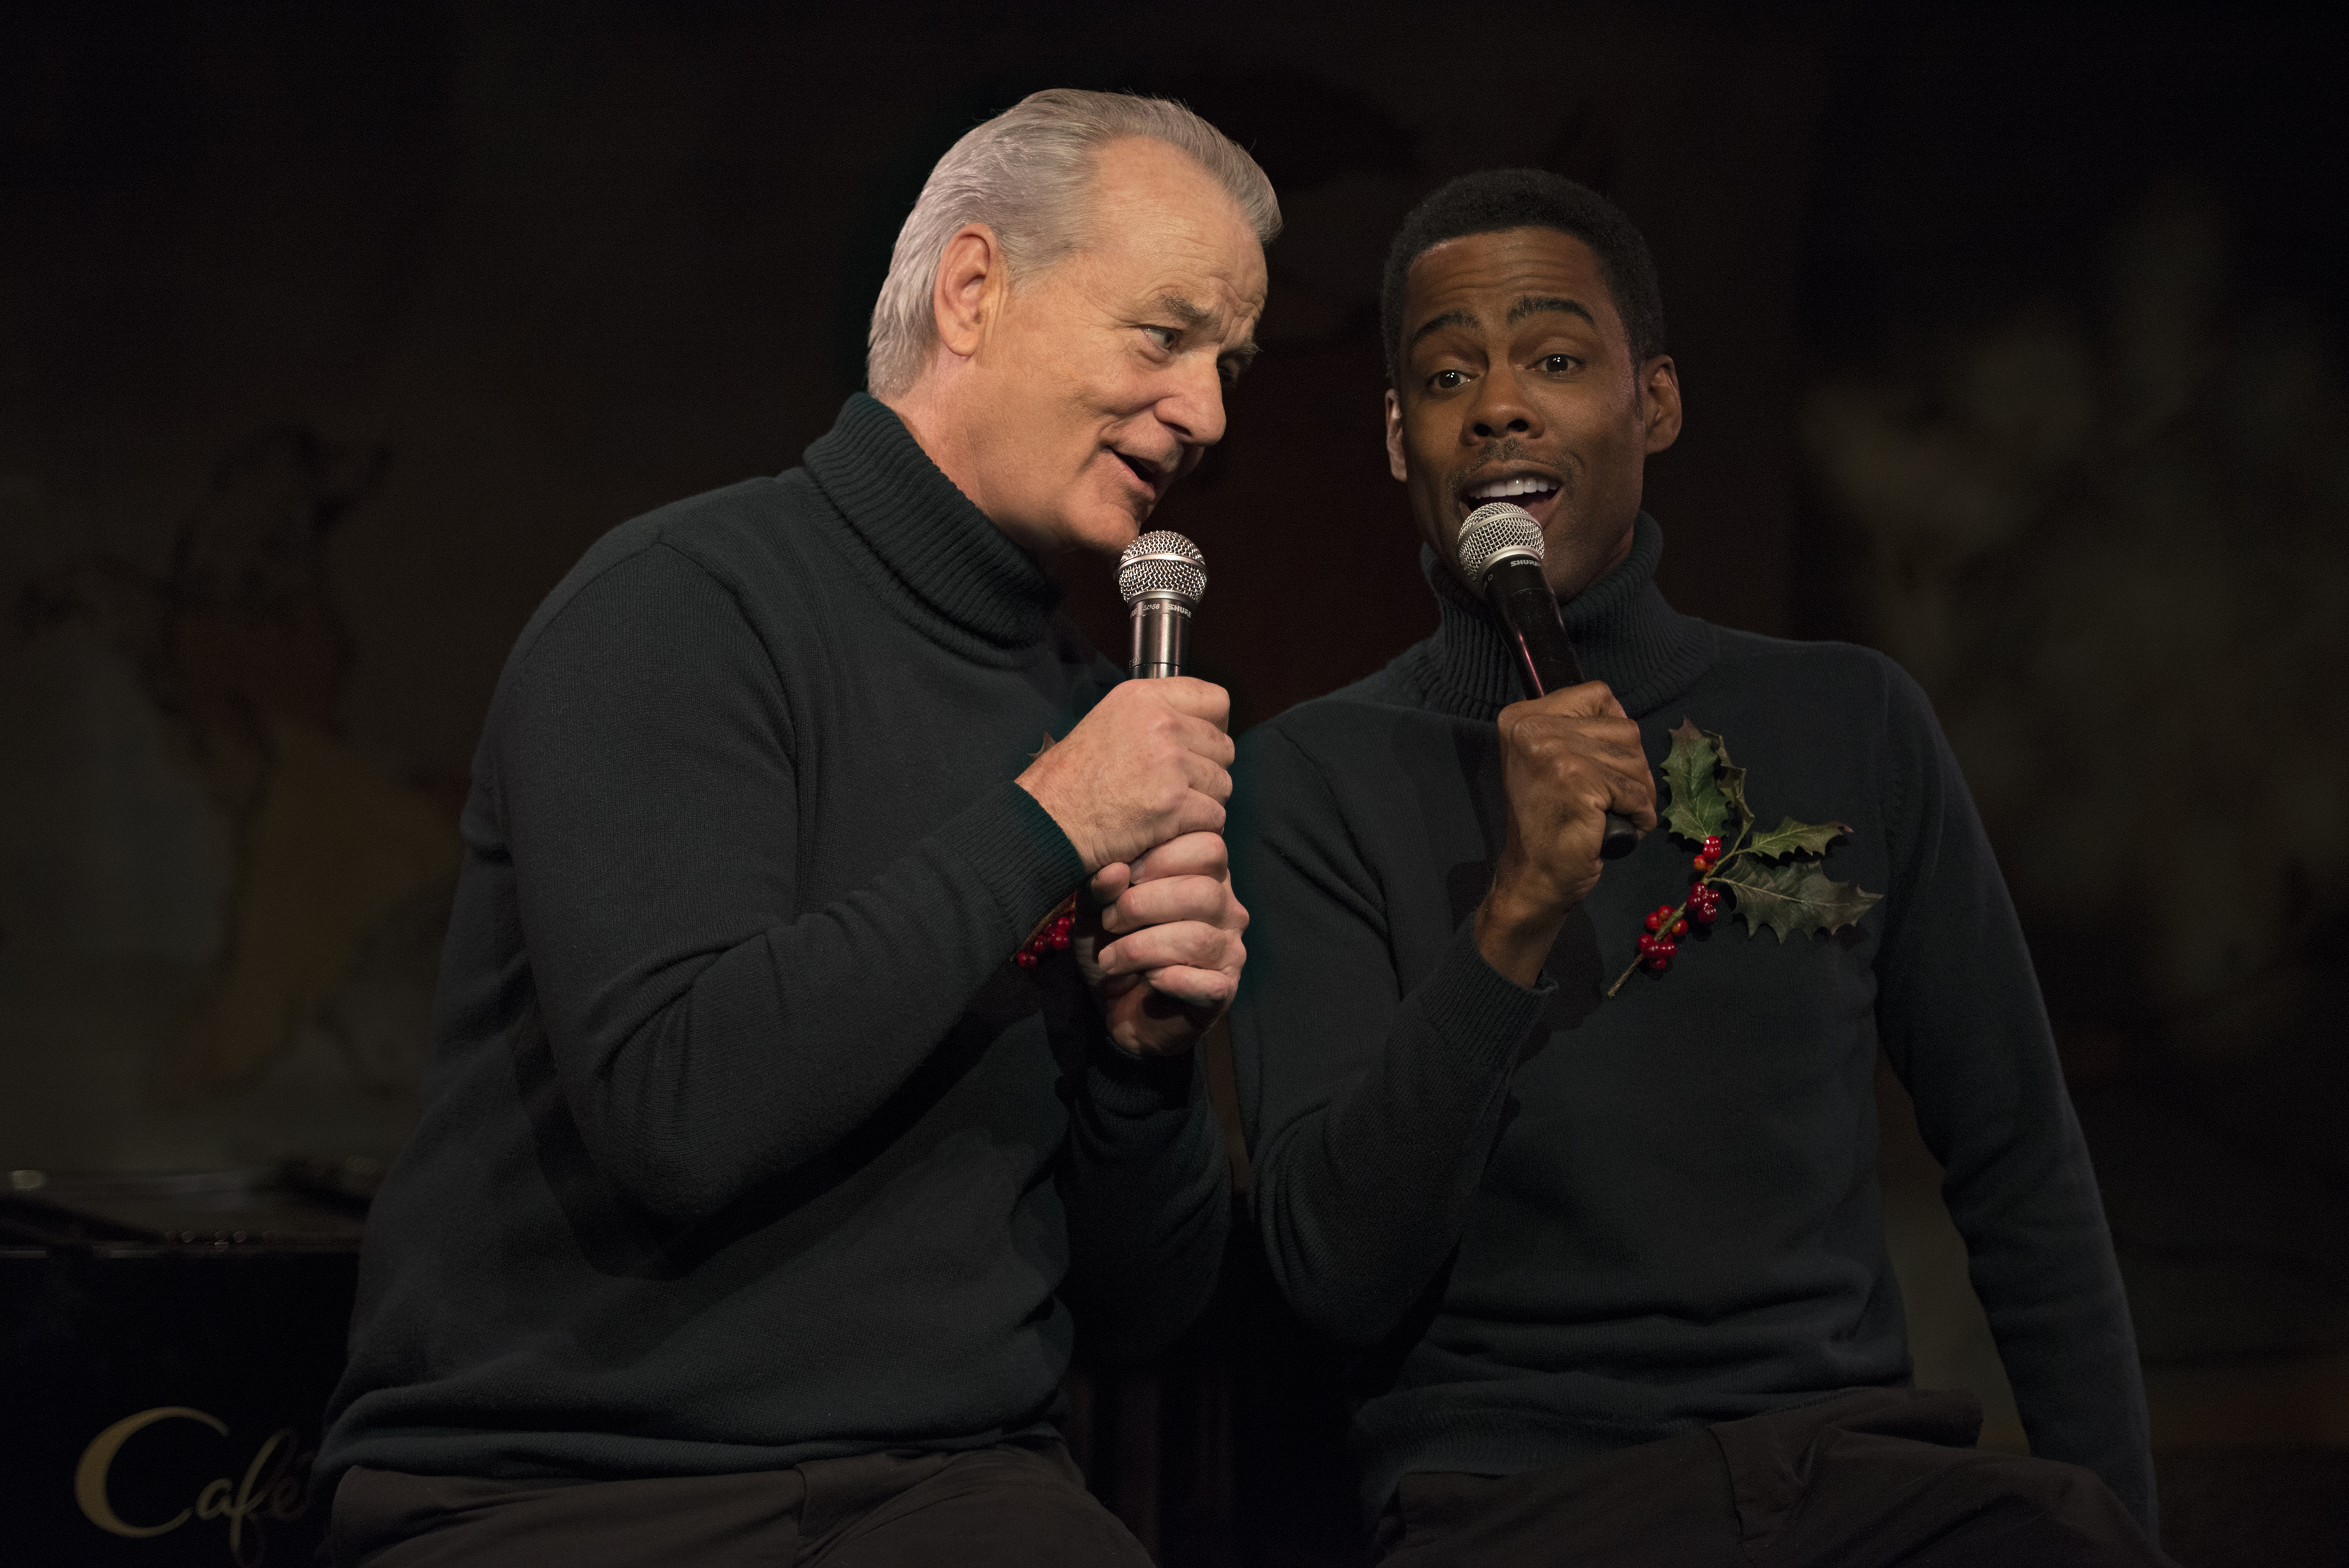 Bill Murray and Chris Rock in A Very Murray Christmas.